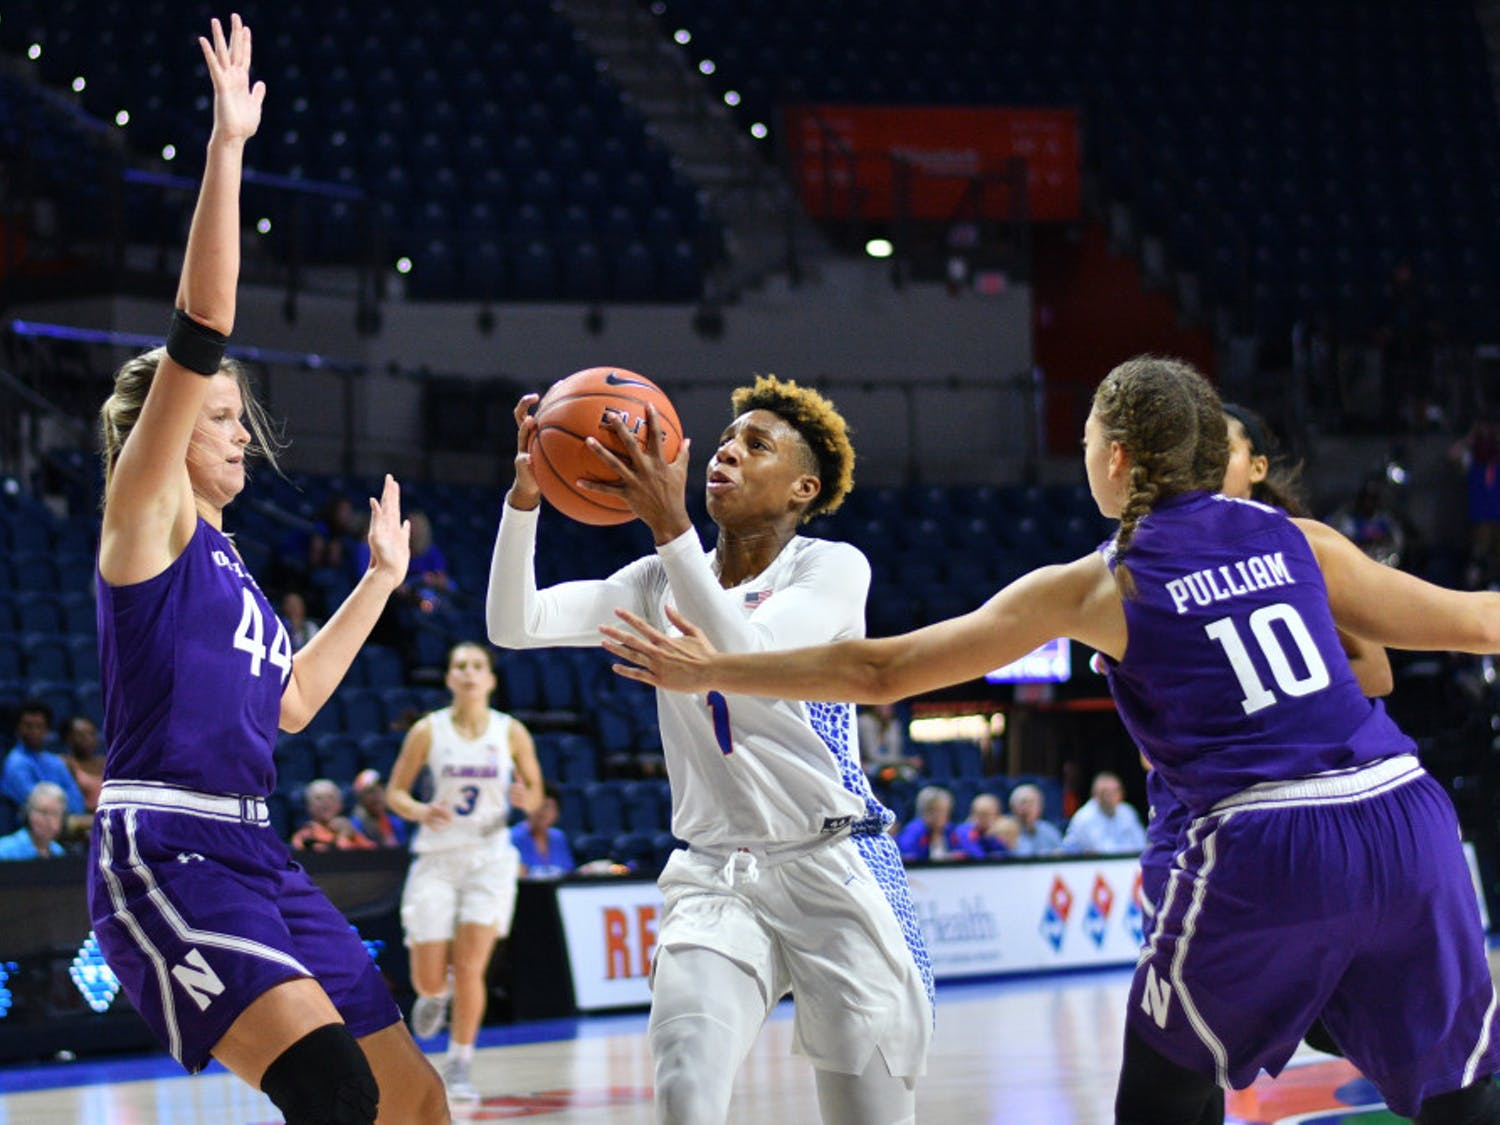 Florida guard Kiara Smith led the team with 13 points on 4-of-7 shooting during UF's 71-40 loss to South Carolina on Thursday.